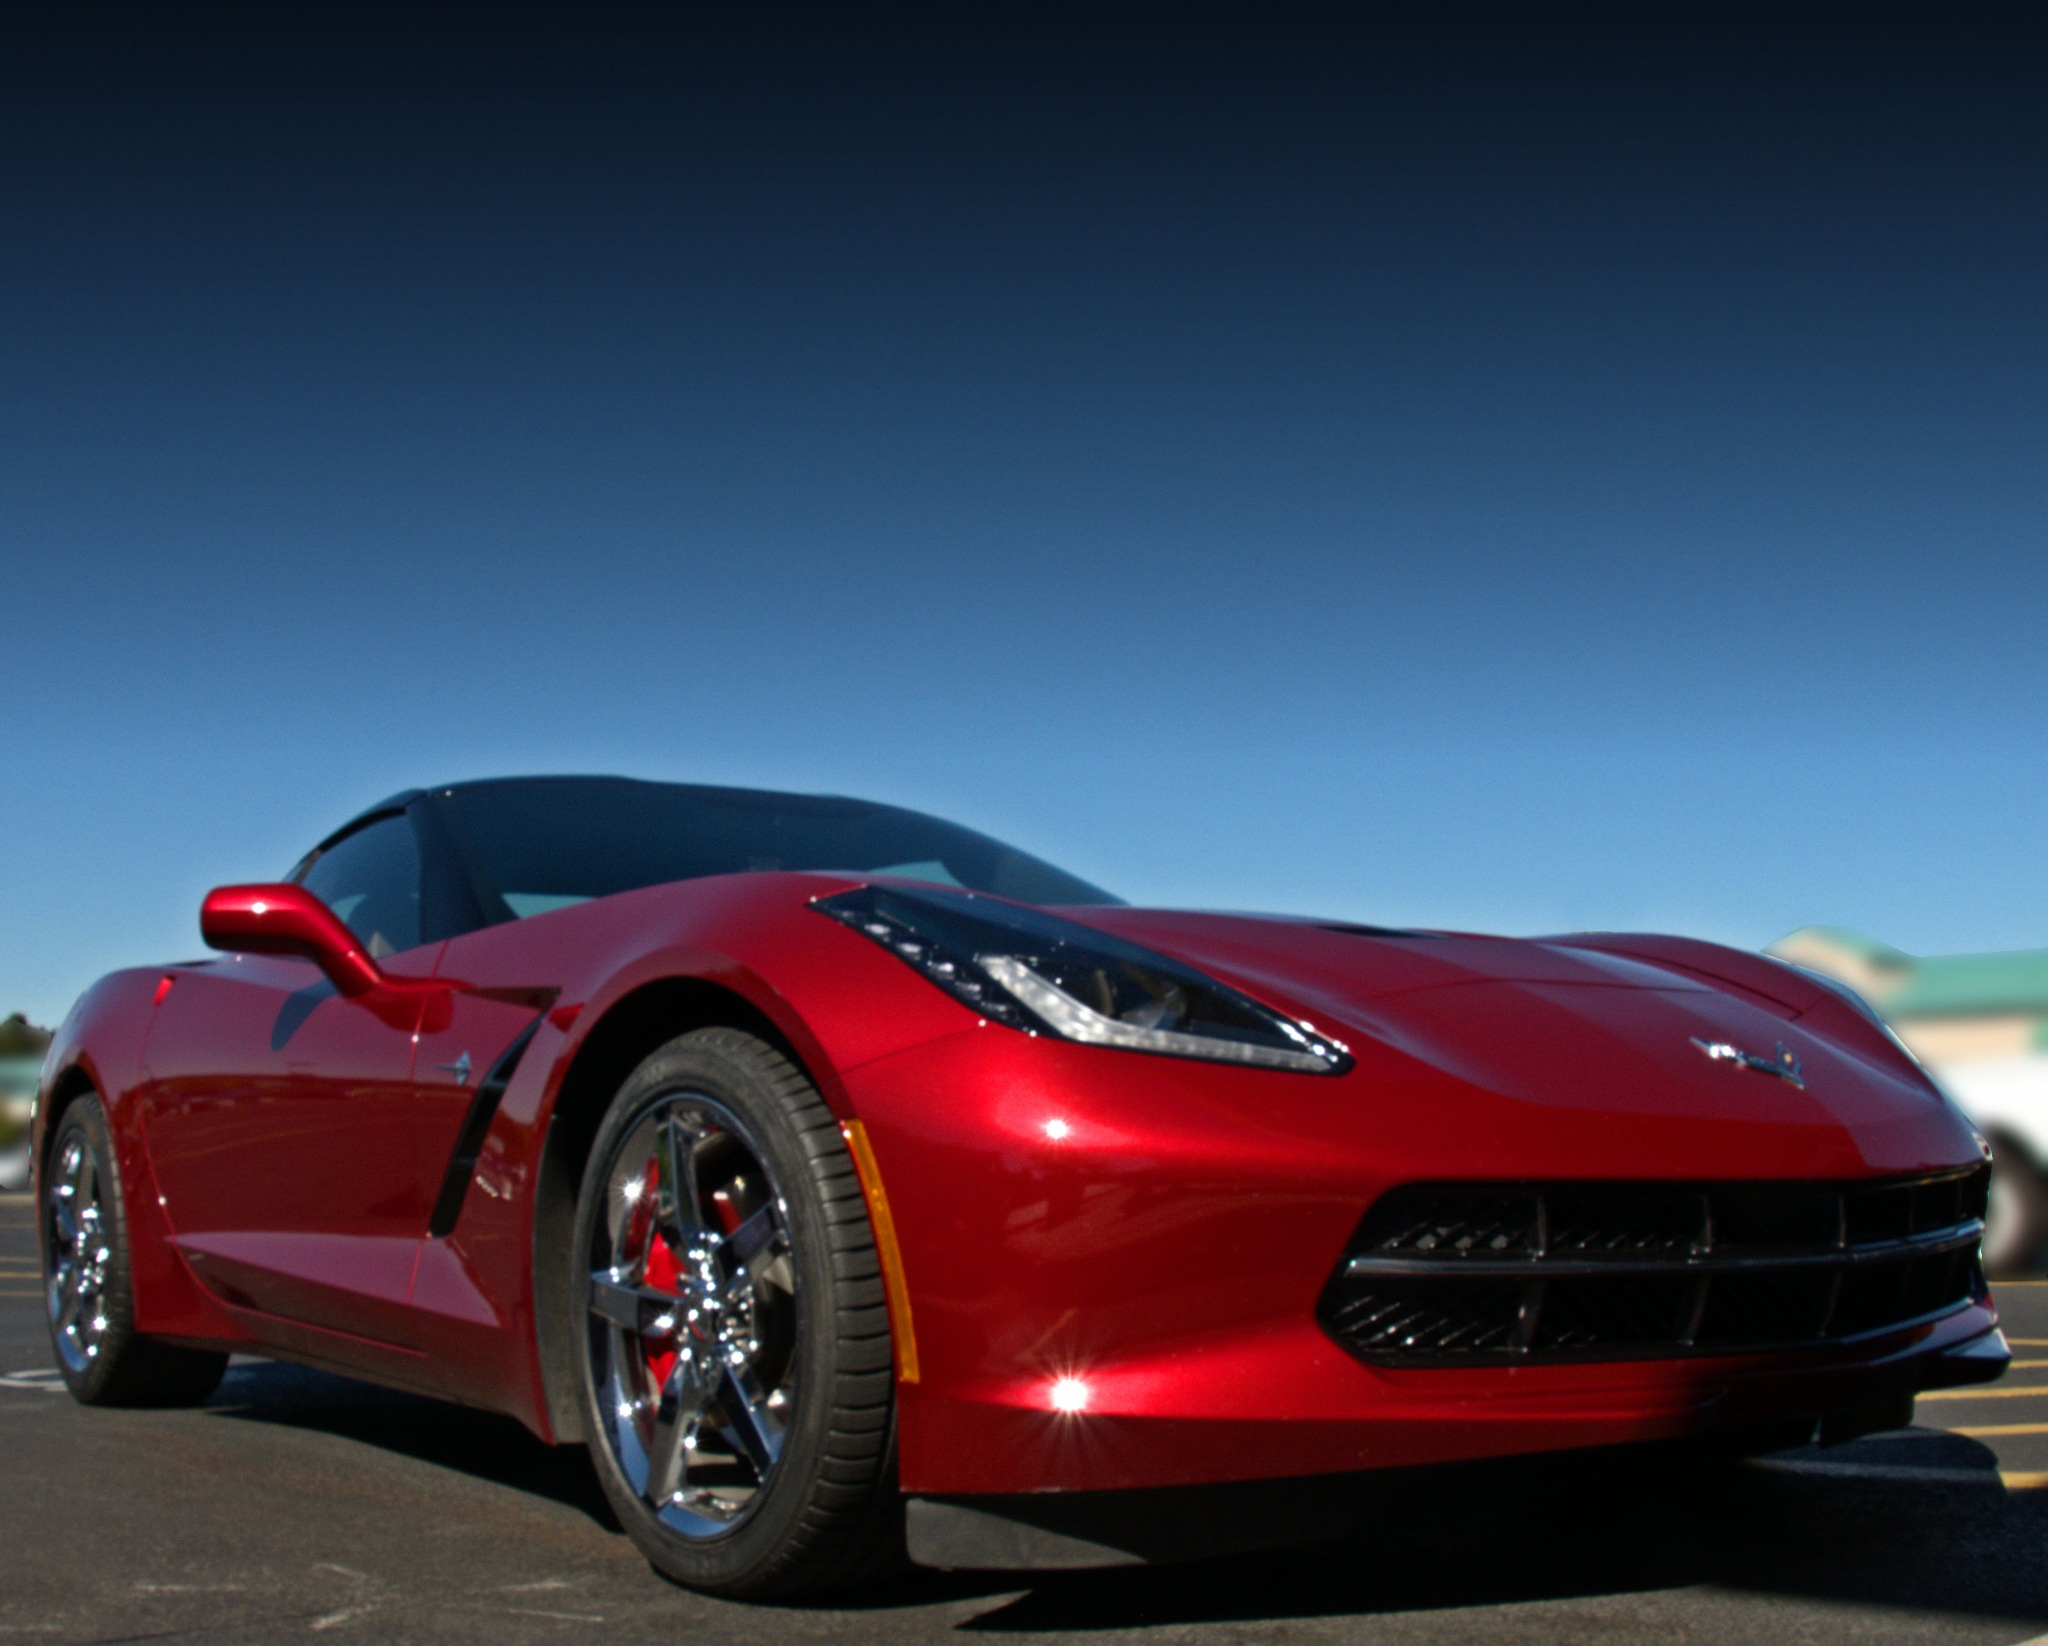 Red Corvette by pscottwong